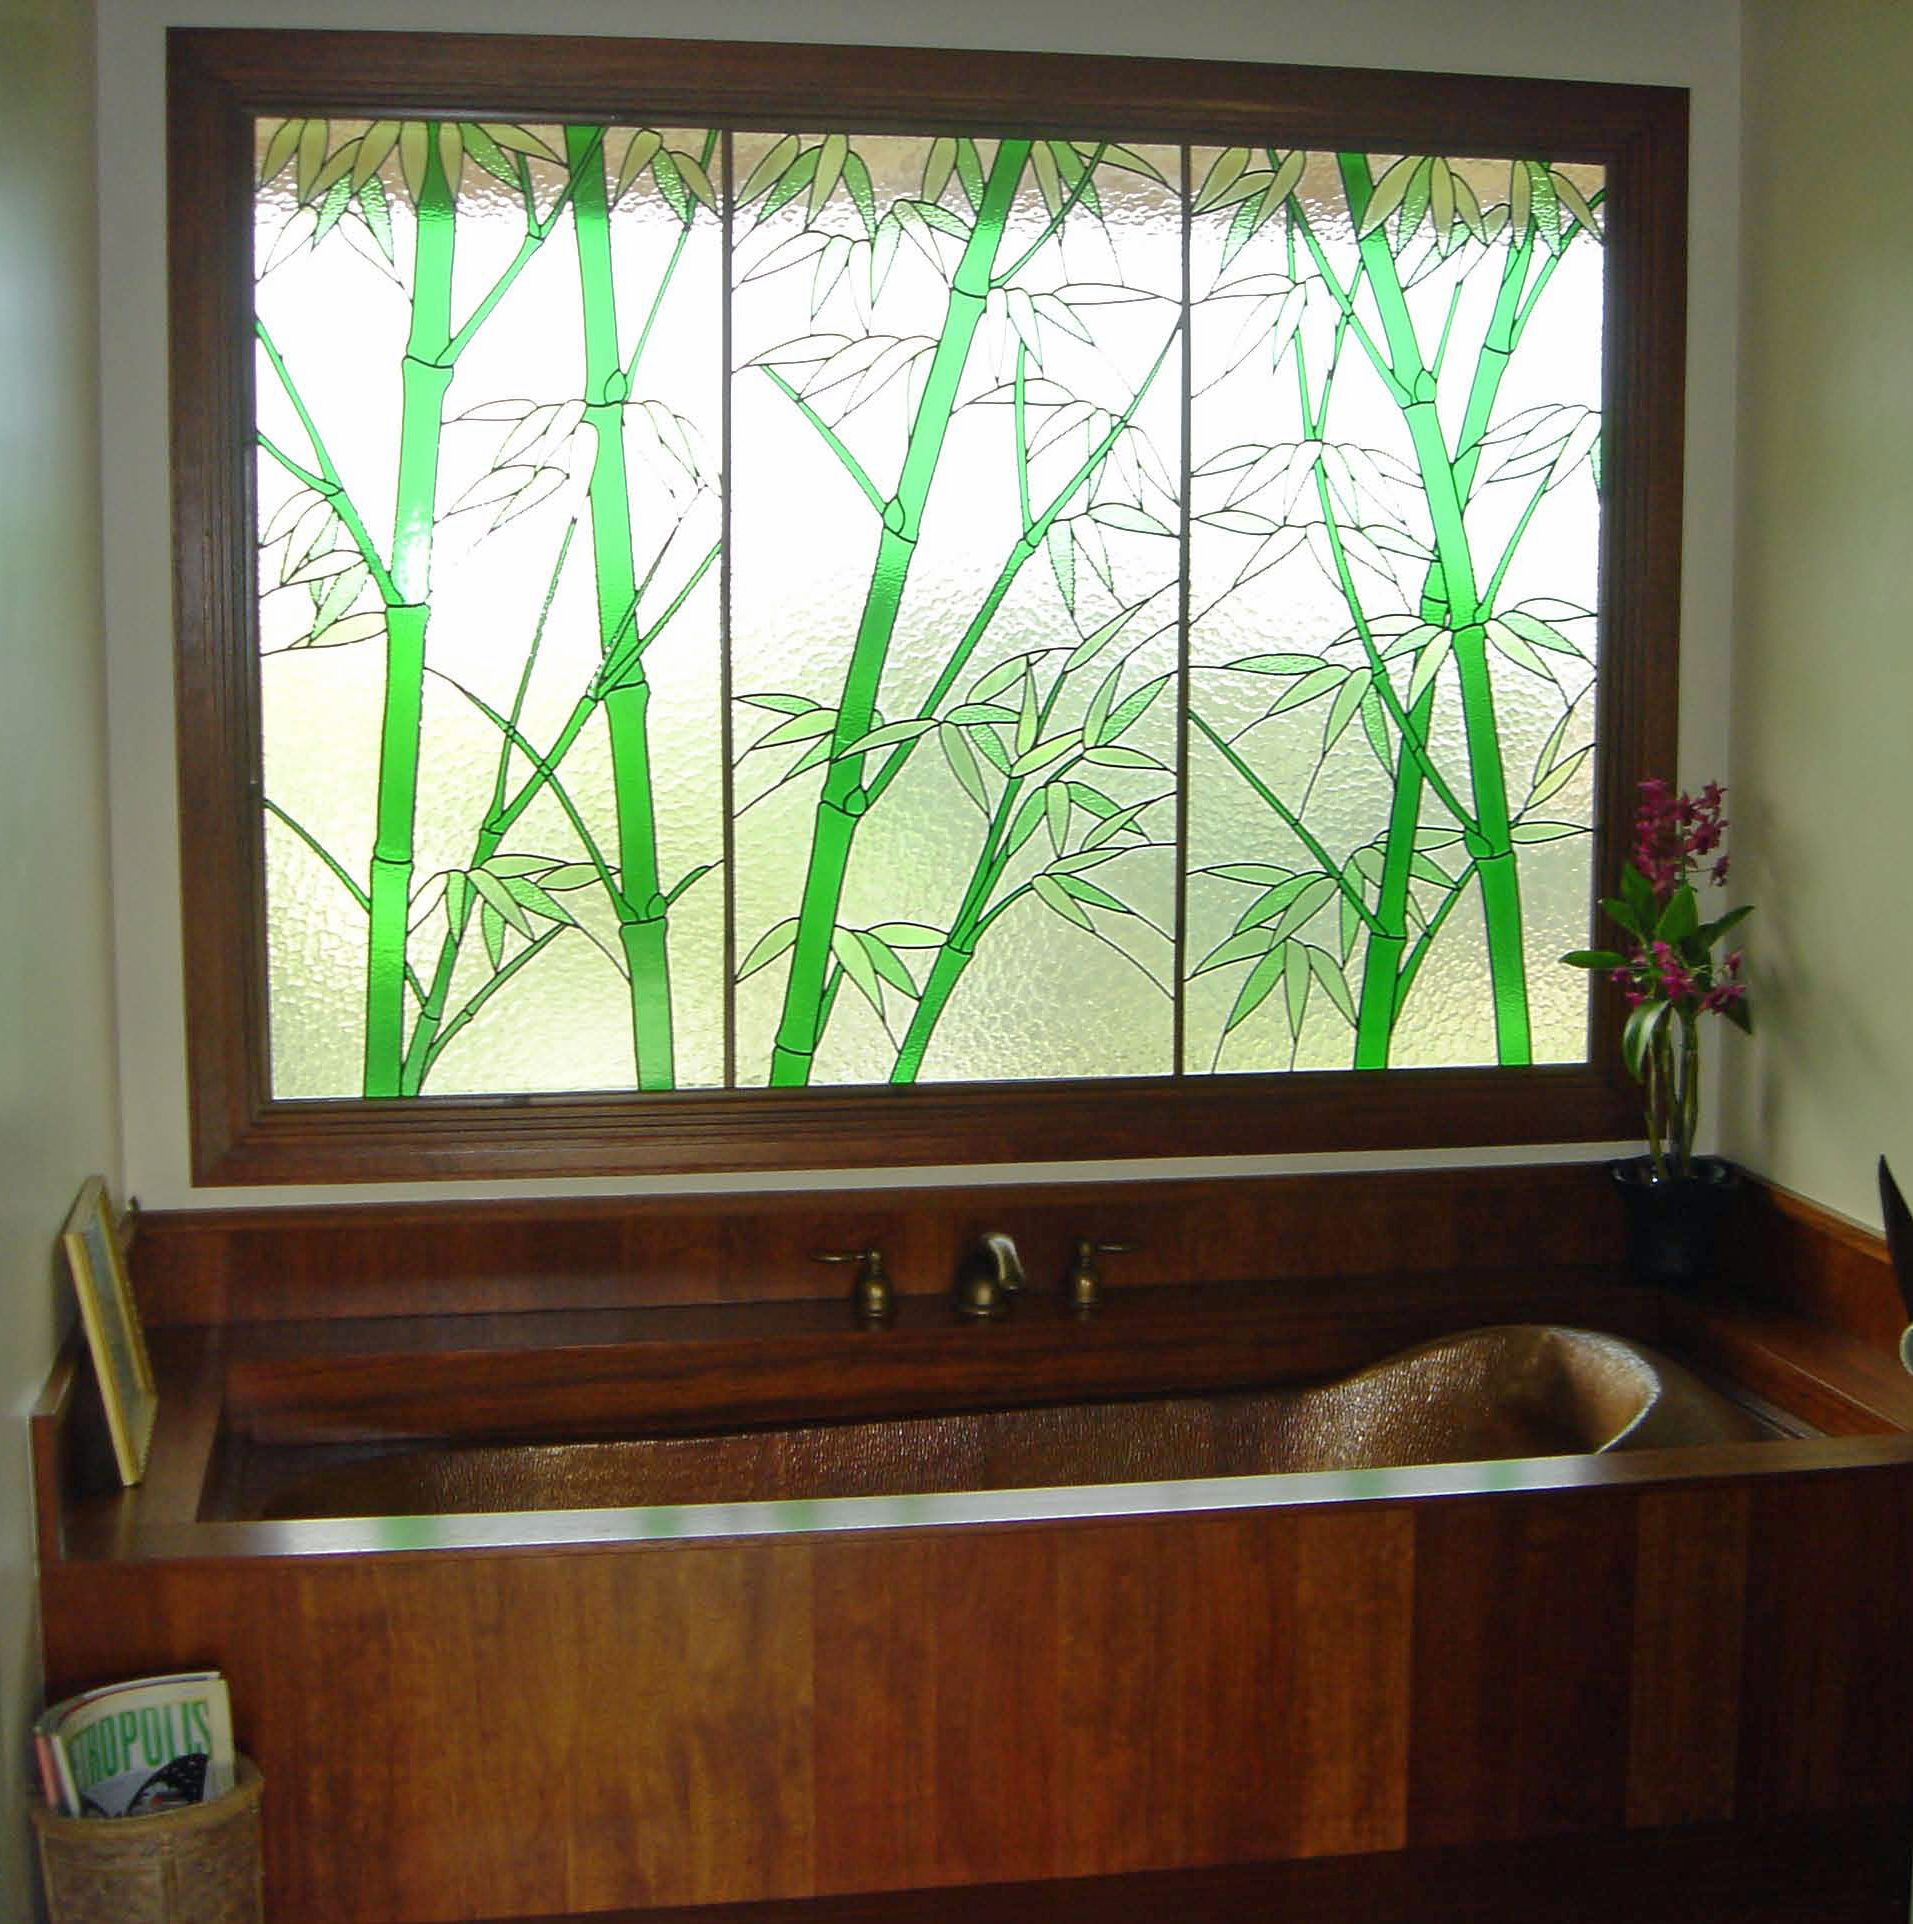 Cling etched glass window decal for - Custom Copper Bathtub Bamboo Motif Stained Glass Window Custom Woodwork Private Residence